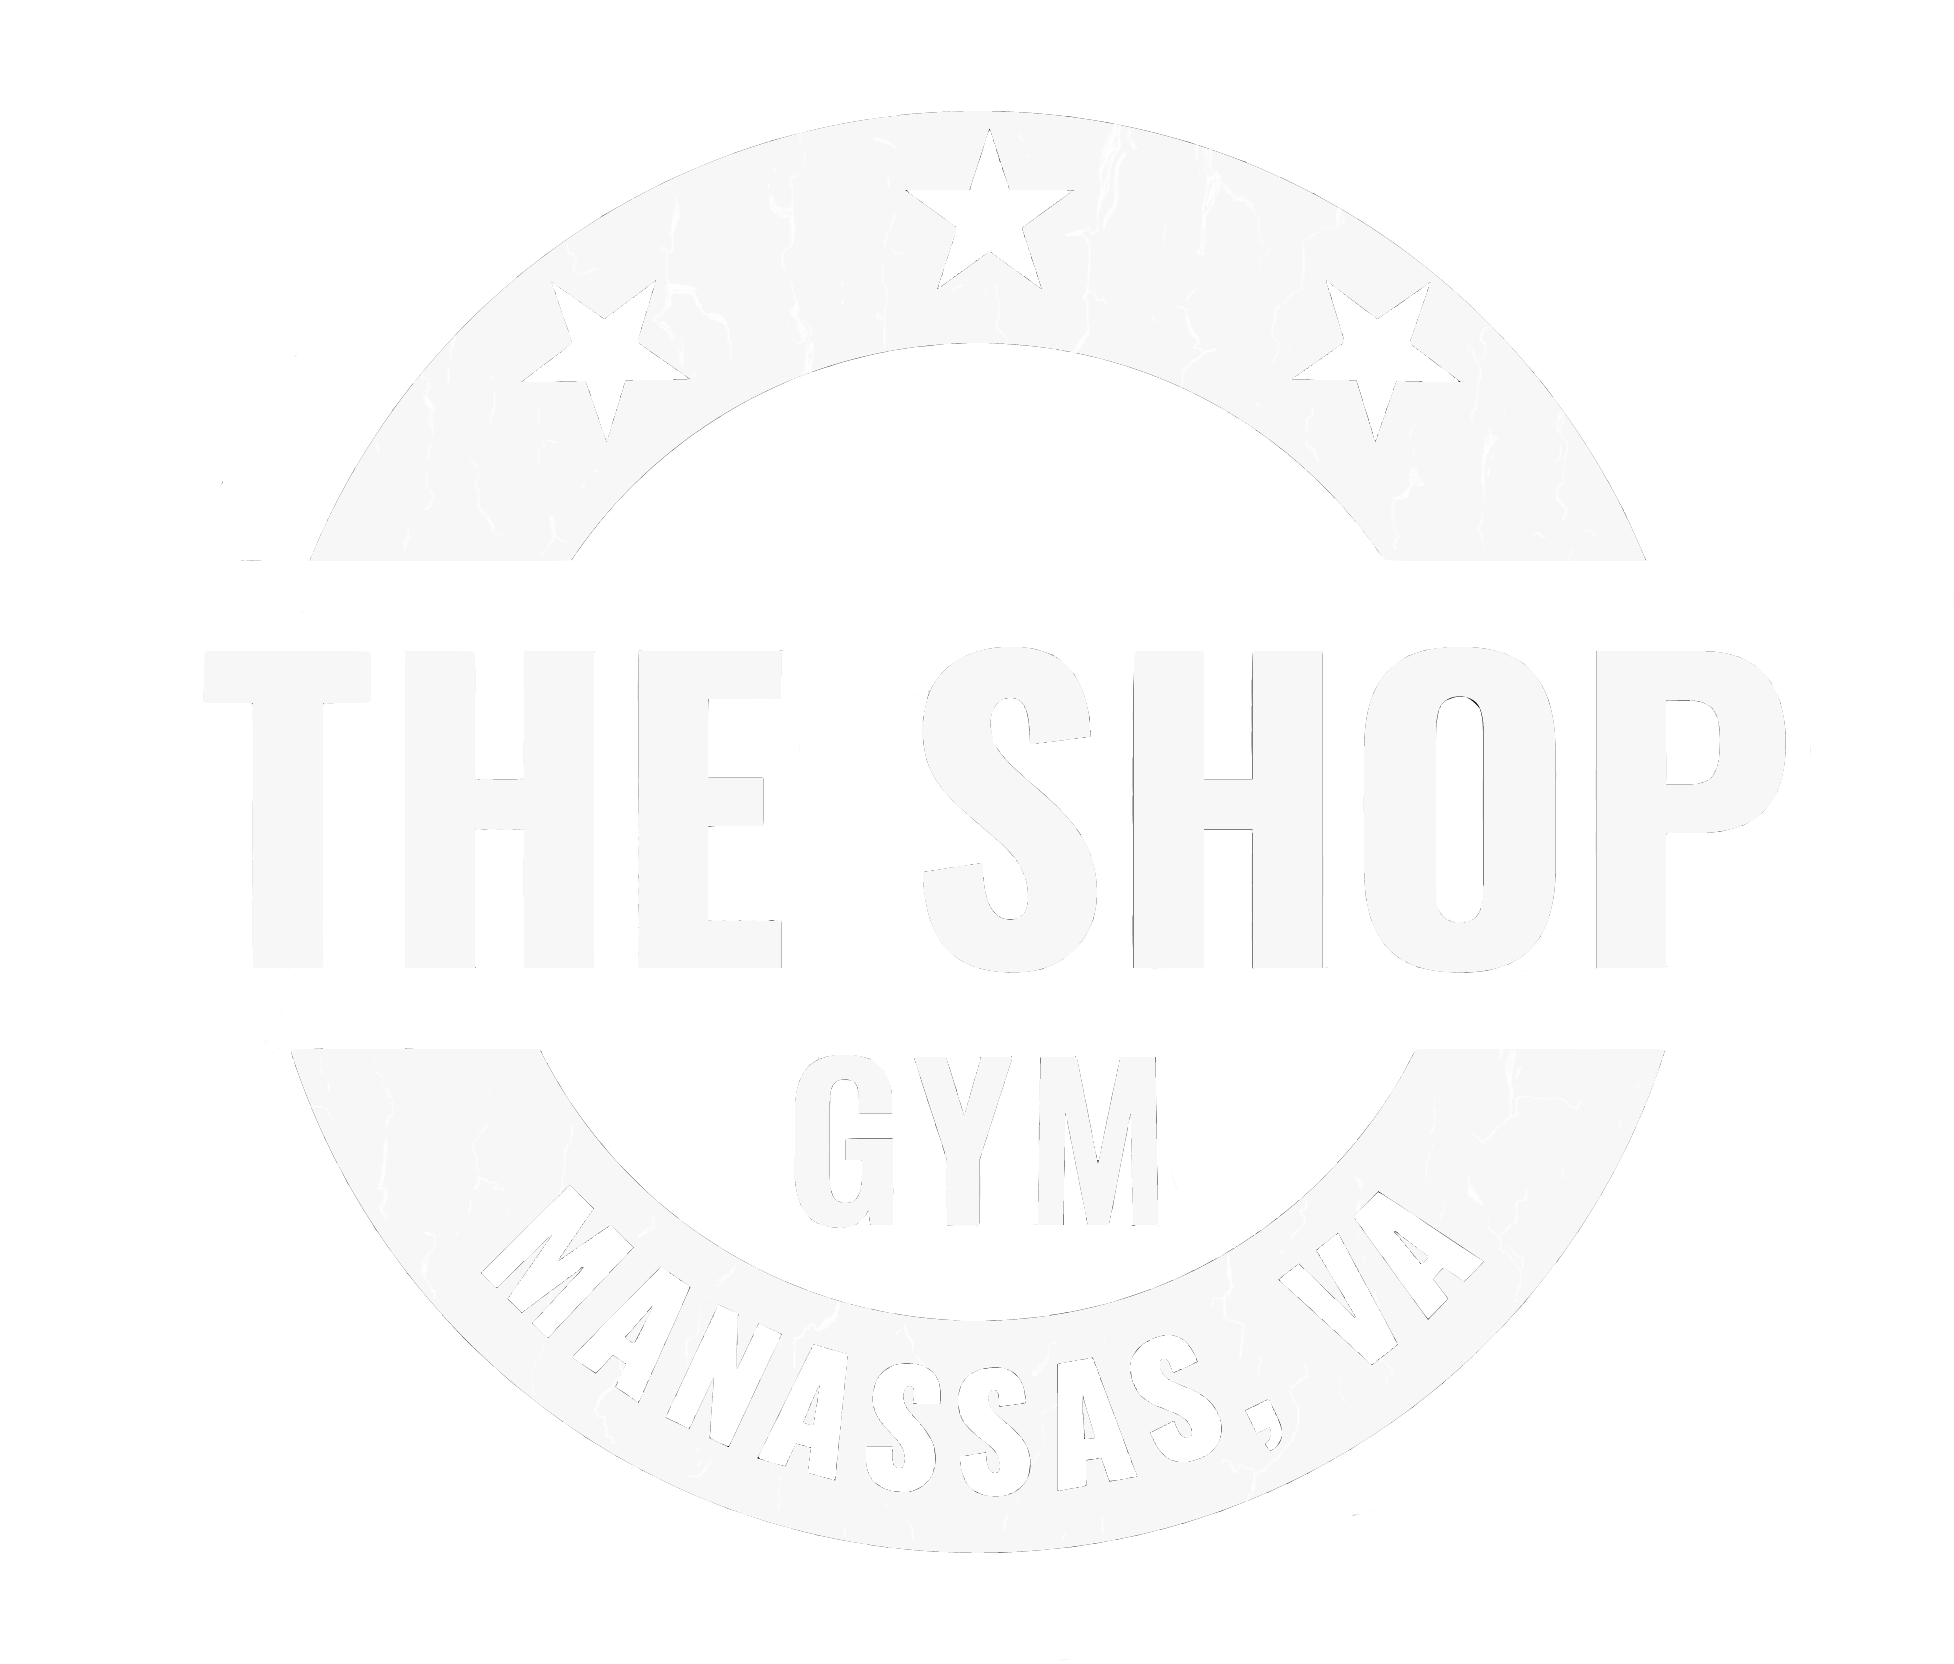 The Shop Gym